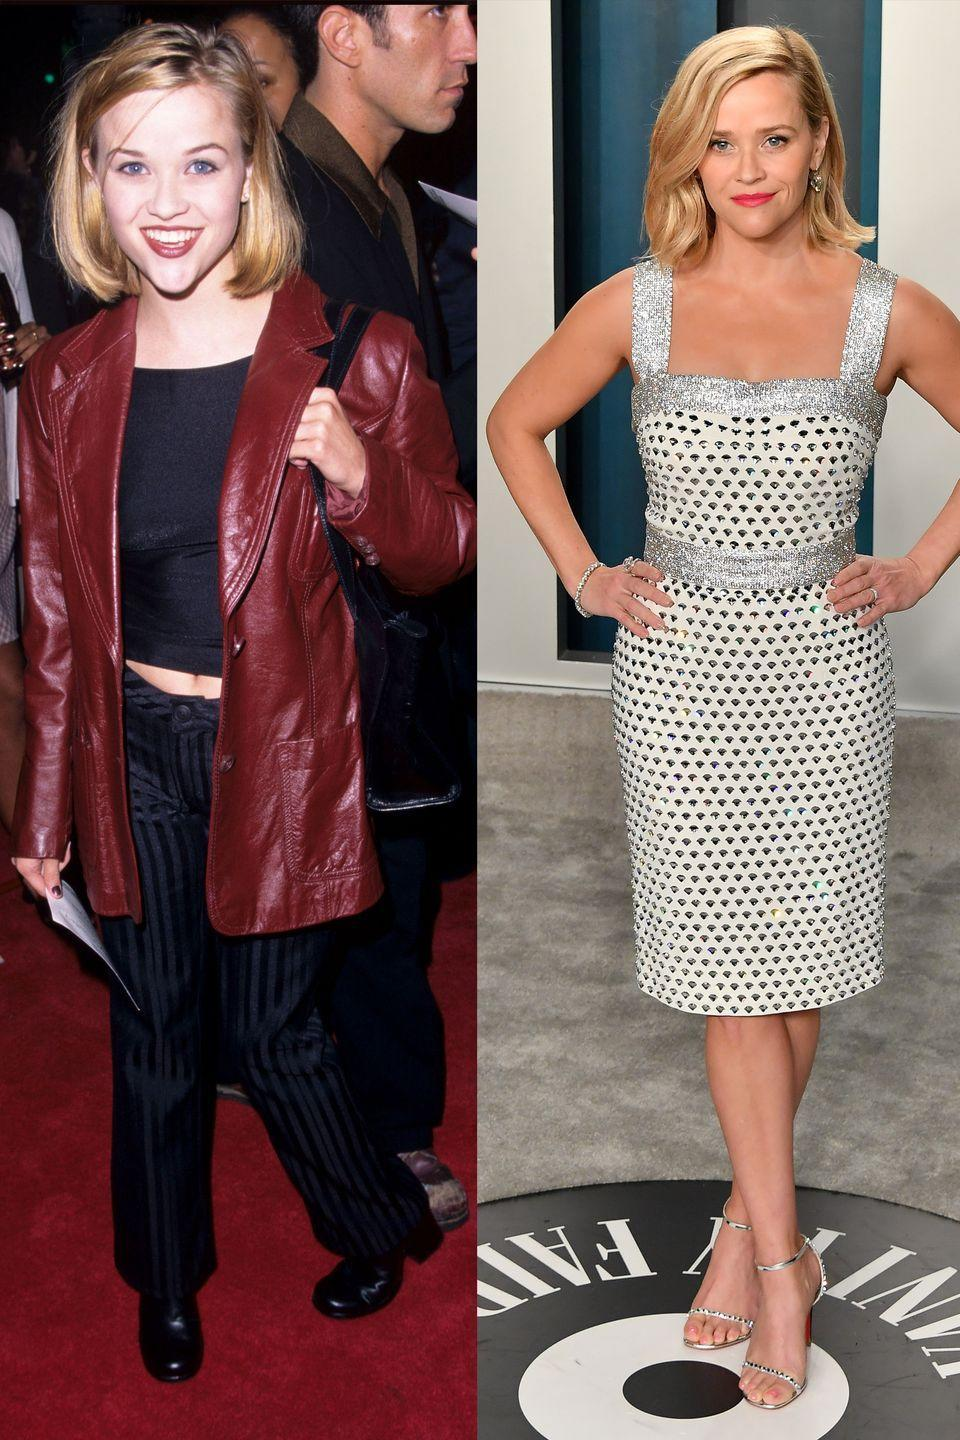 <p>It's impossible to pick which Reese outfit we like more. Don't make us choose!</p>